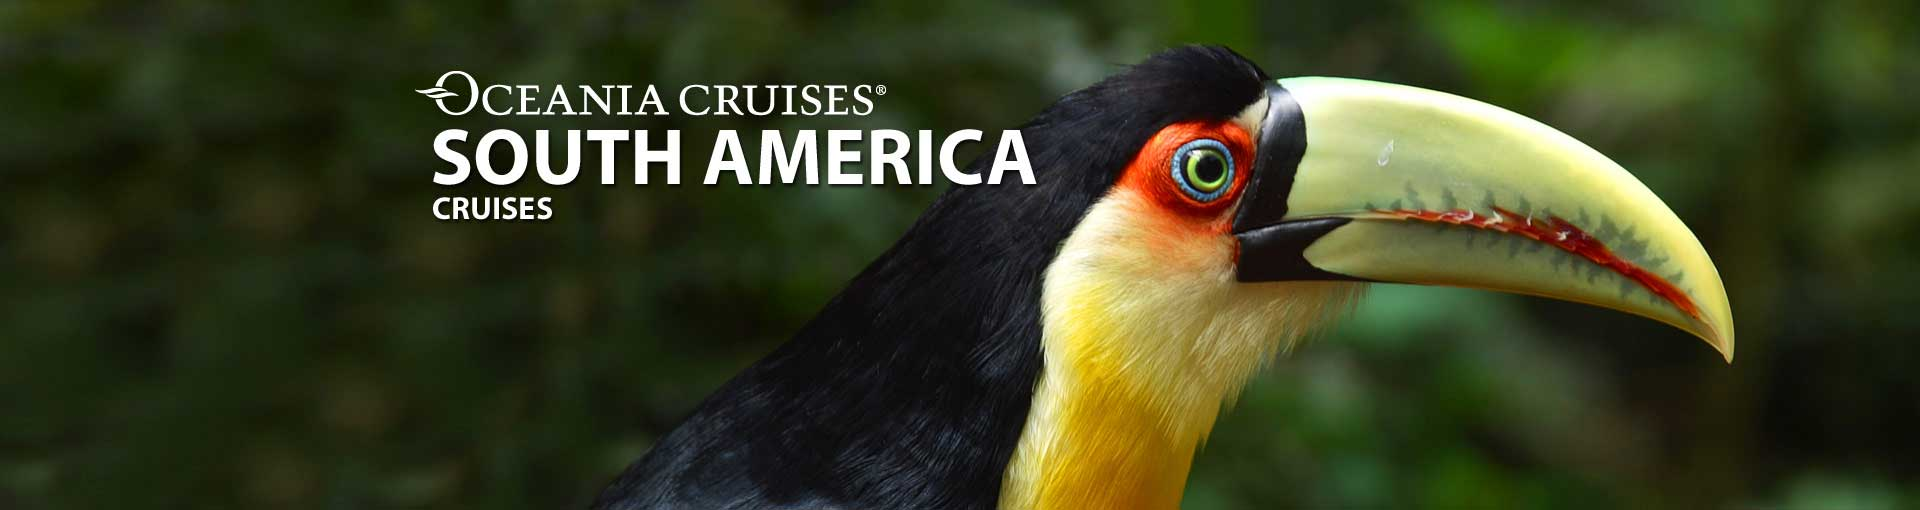 Oceania Cruises South America Cruises